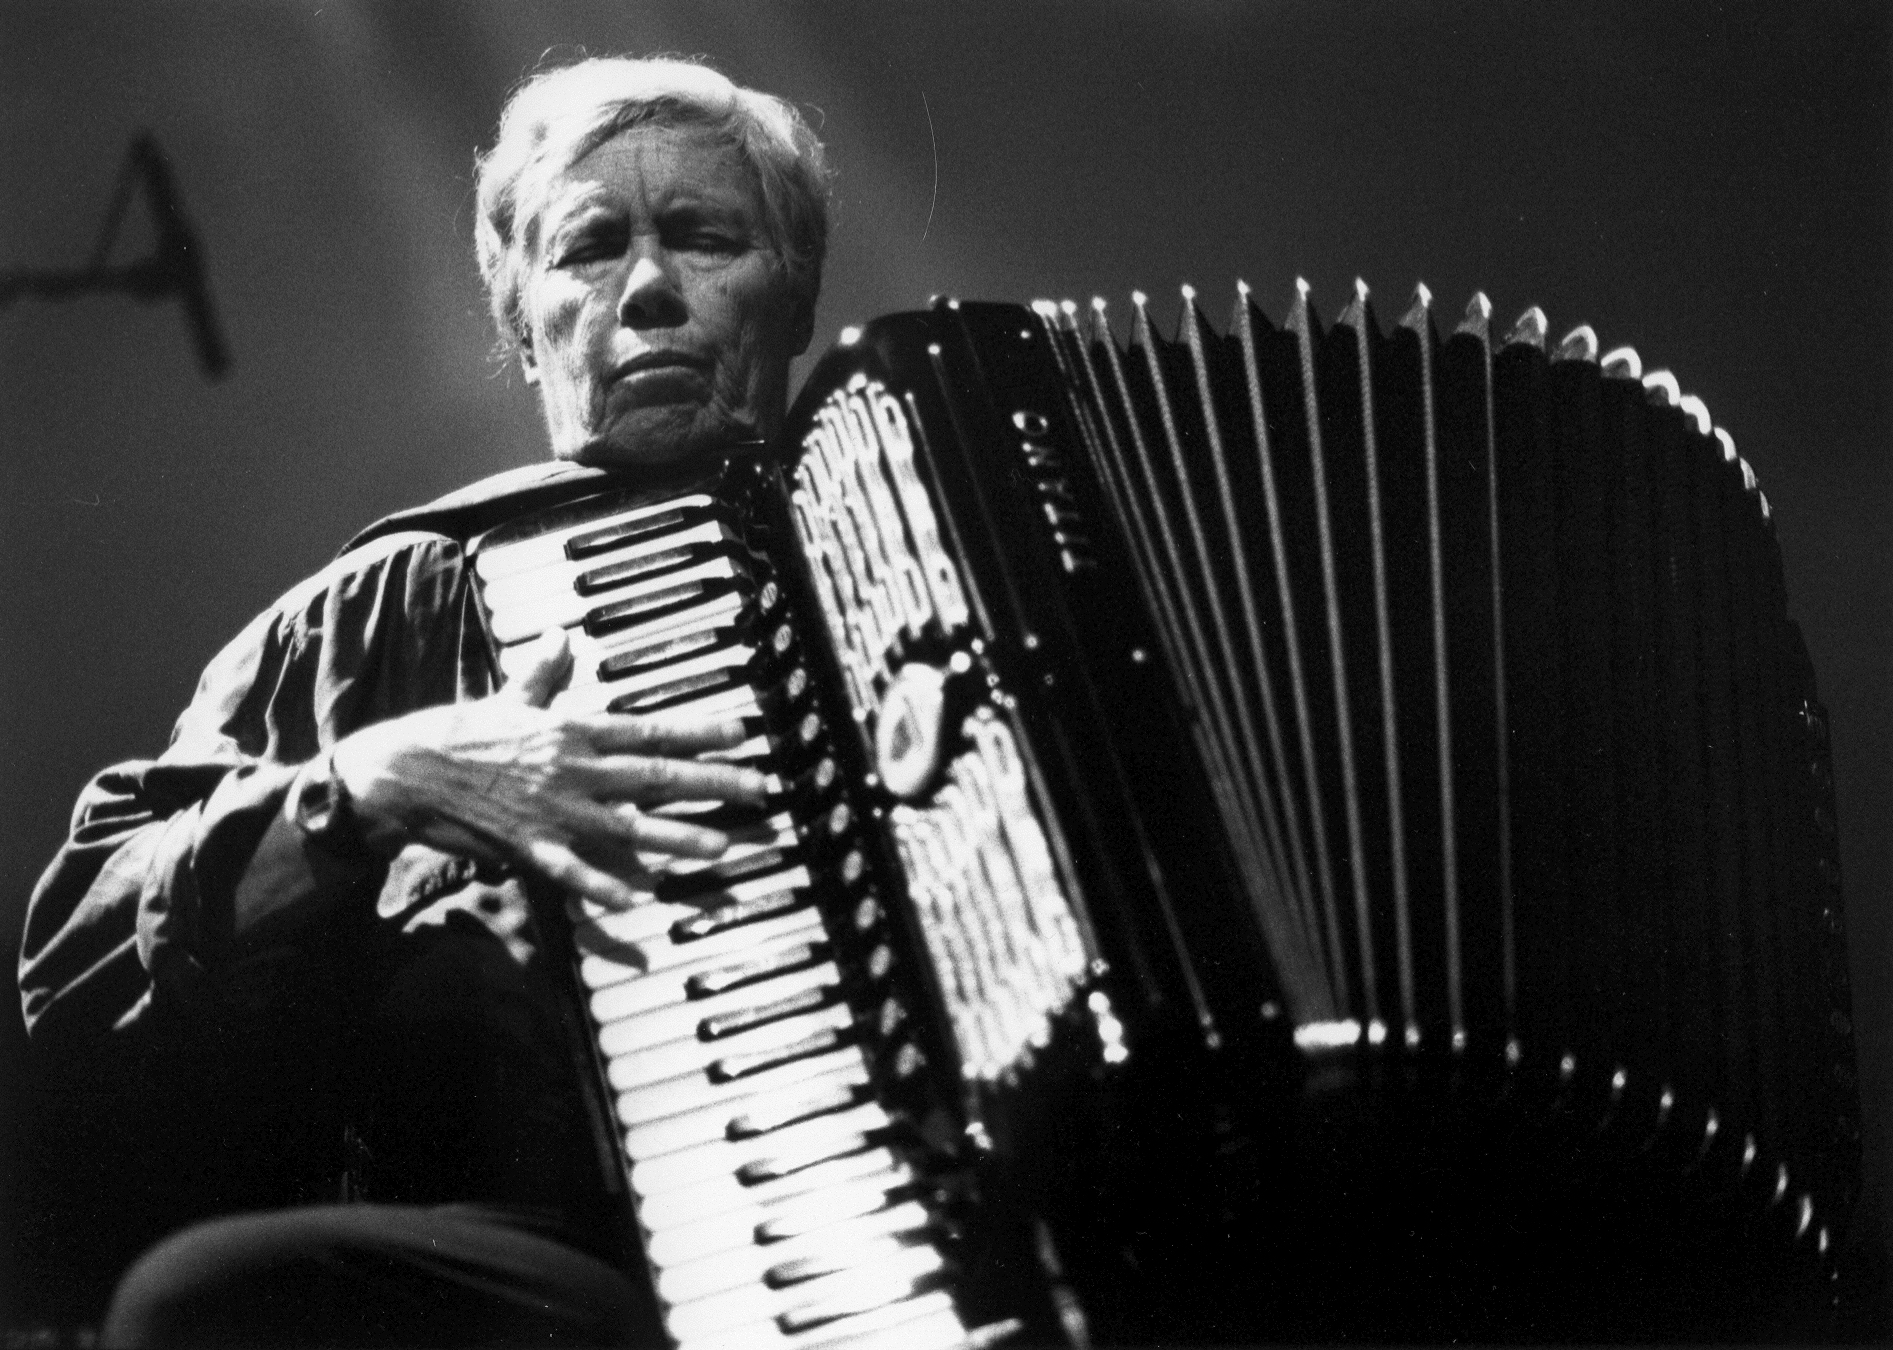 Falling and laughing: a conversation with Pauline Oliveros